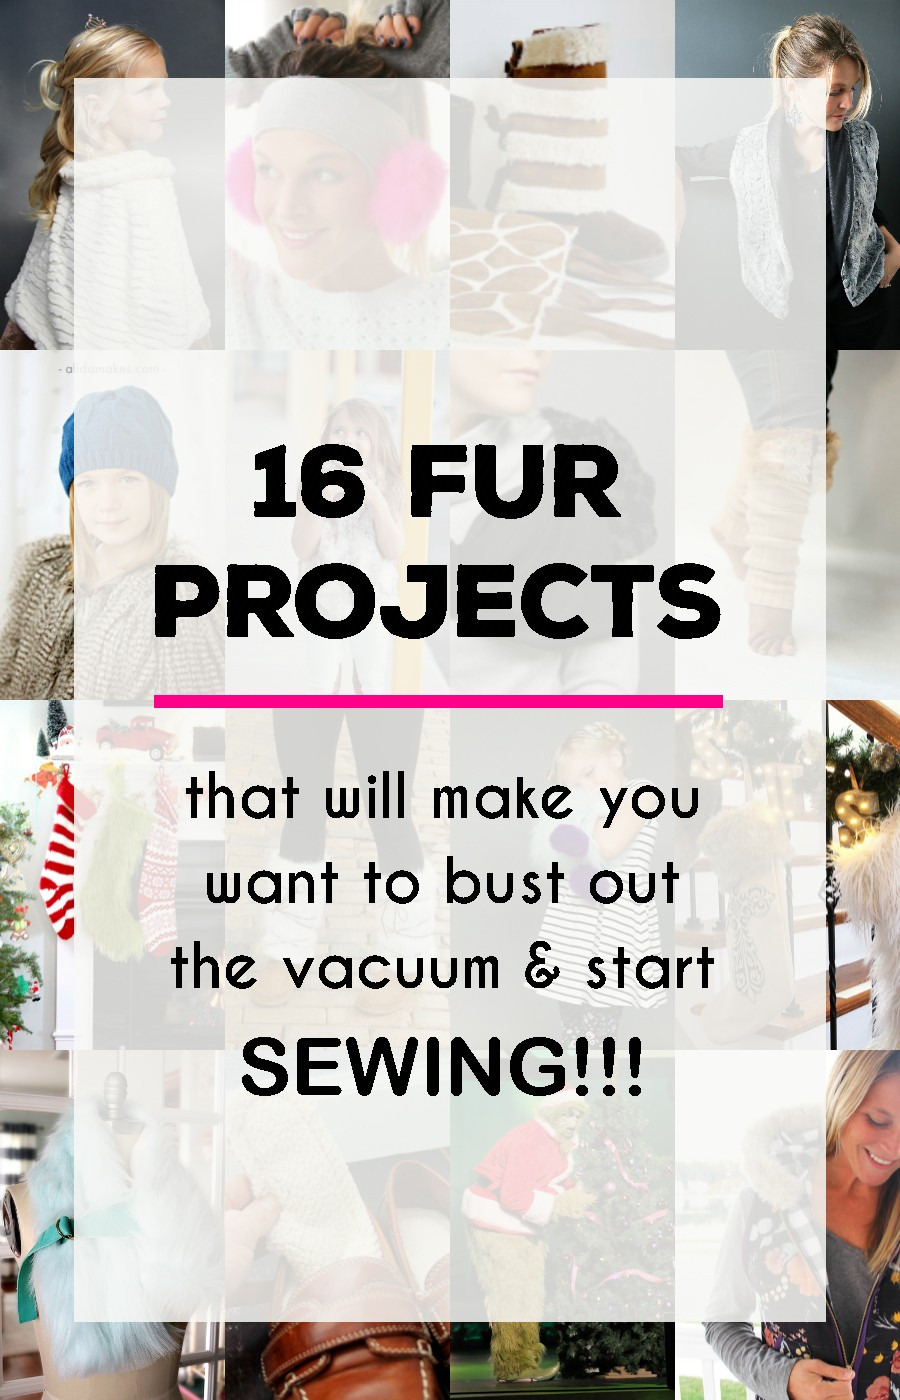 16 fur sewing projects that will make you want to break out the vacuum and start sewing!